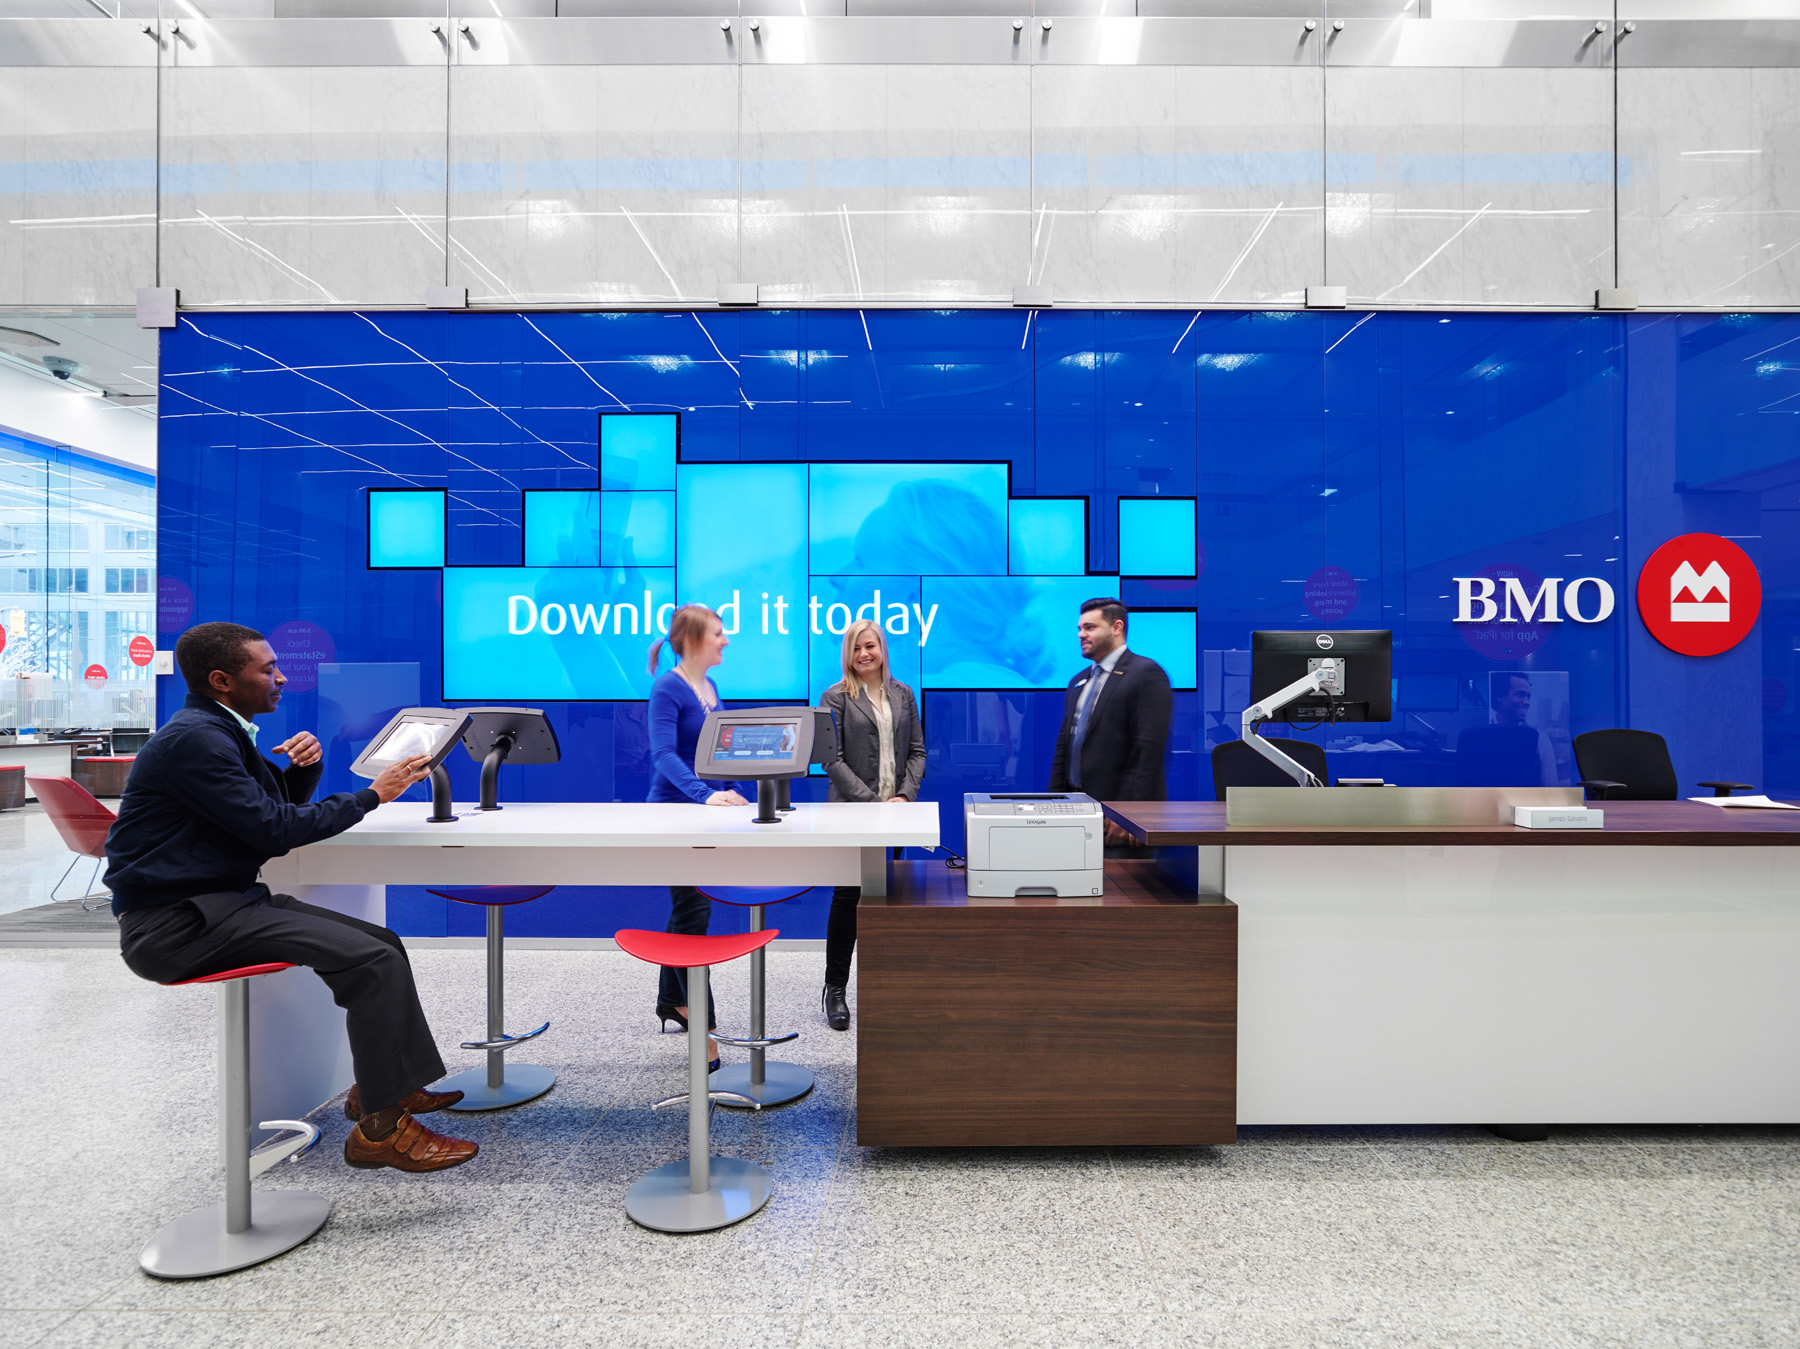 BMO collaboration area with desks and computers in front of blue wall with digital screens and BMO logo